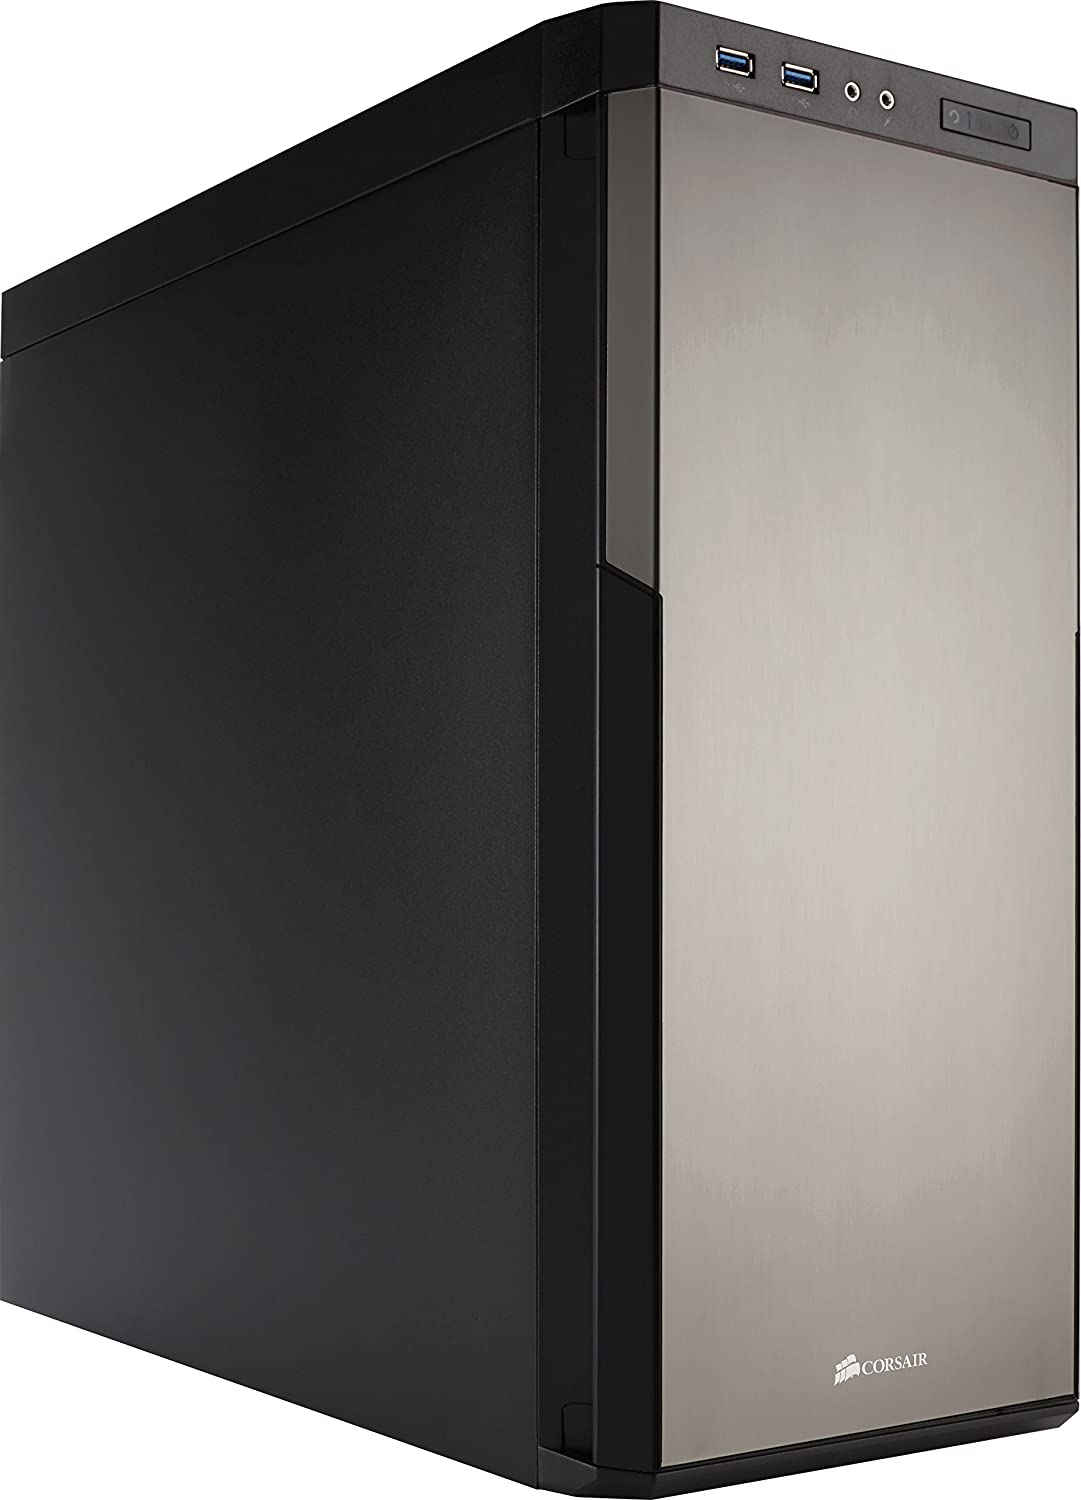 Corsair Carbide 330R Titanium Edition Case da Gaming, Mid-Tower ATX, Insonorizzato